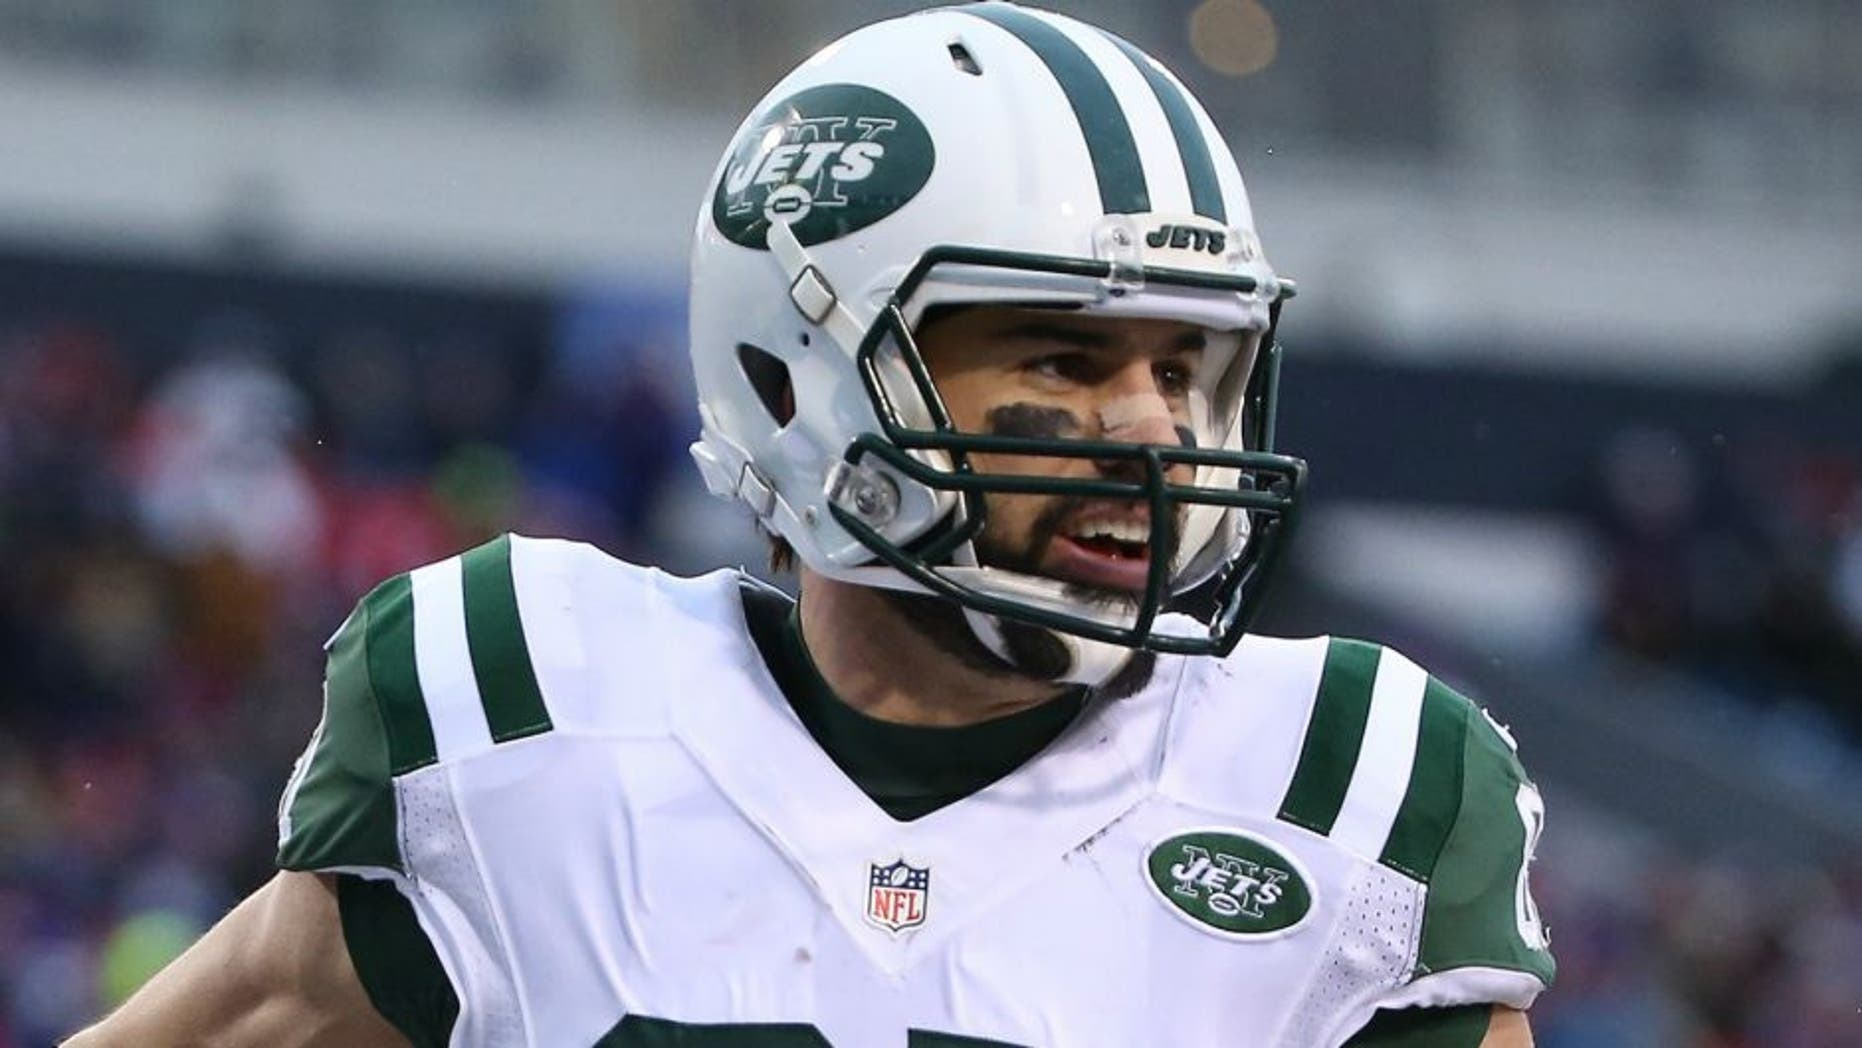 ORCHARD PARK, NY - JANUARY 3: Eric Decker #87 of the New York Jets celebrates after scoring a touchdown against the Buffalo Bills during NFL game action at Ralph Wilson Stadium on January 3, 2016 in Orchard Park, New York. (Photo by Tom Szczerbowski/Getty Images) *** Local Caption *** Eric Decker,ORCHARD PARK, NY - JANUARY 3: Eric Decker #87 of the New York Jets celebrates after scoring a touchdown against the Buffalo Bills during NFL game action at Ralph Wilson Stadium on January 3, 2016 in Orchard Park, New York. (Photo by Tom Szczerbowski/Getty Images)